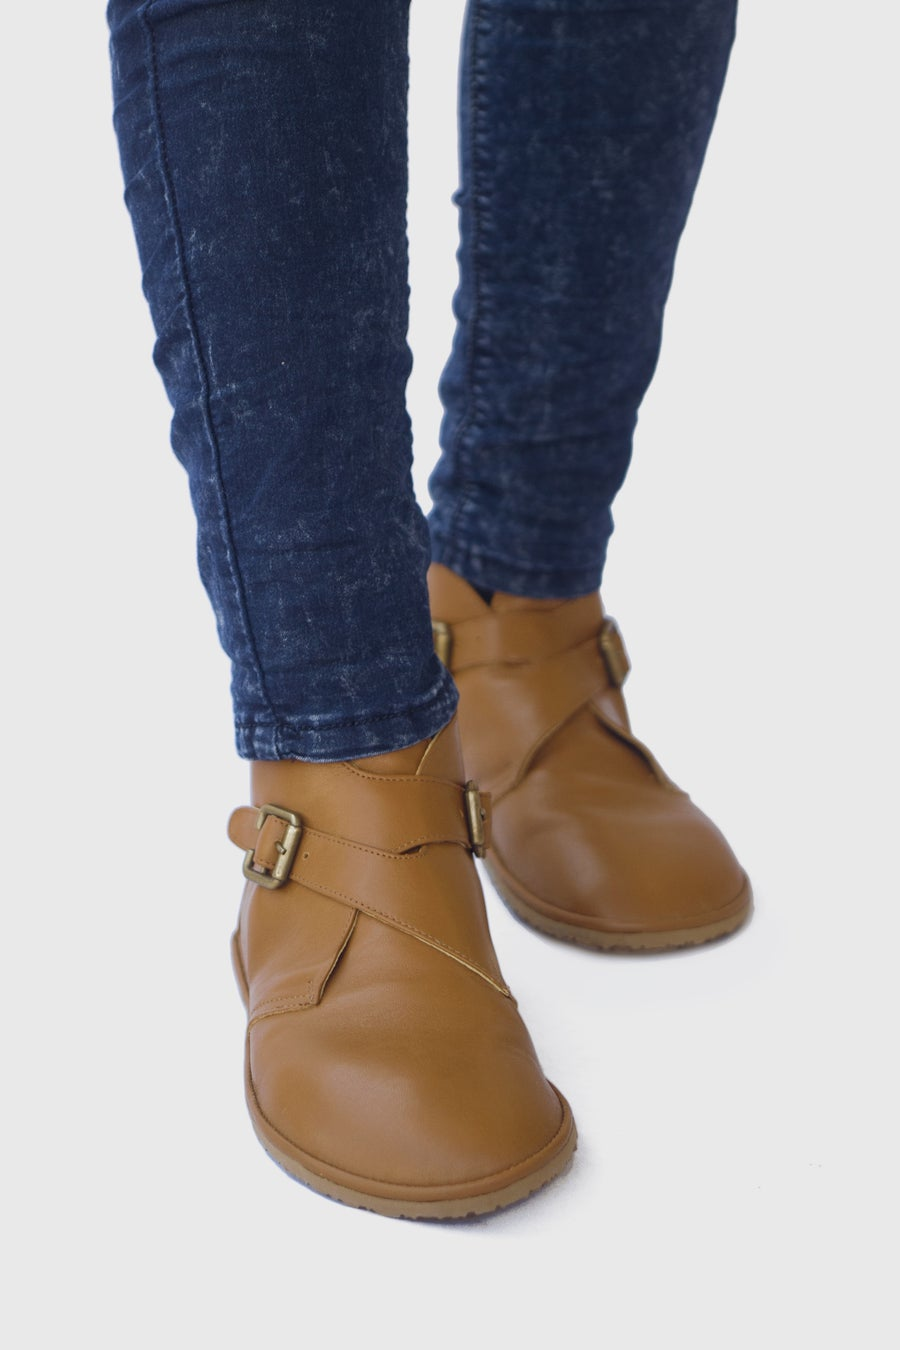 Image of Crossroads boots in Sepia brown